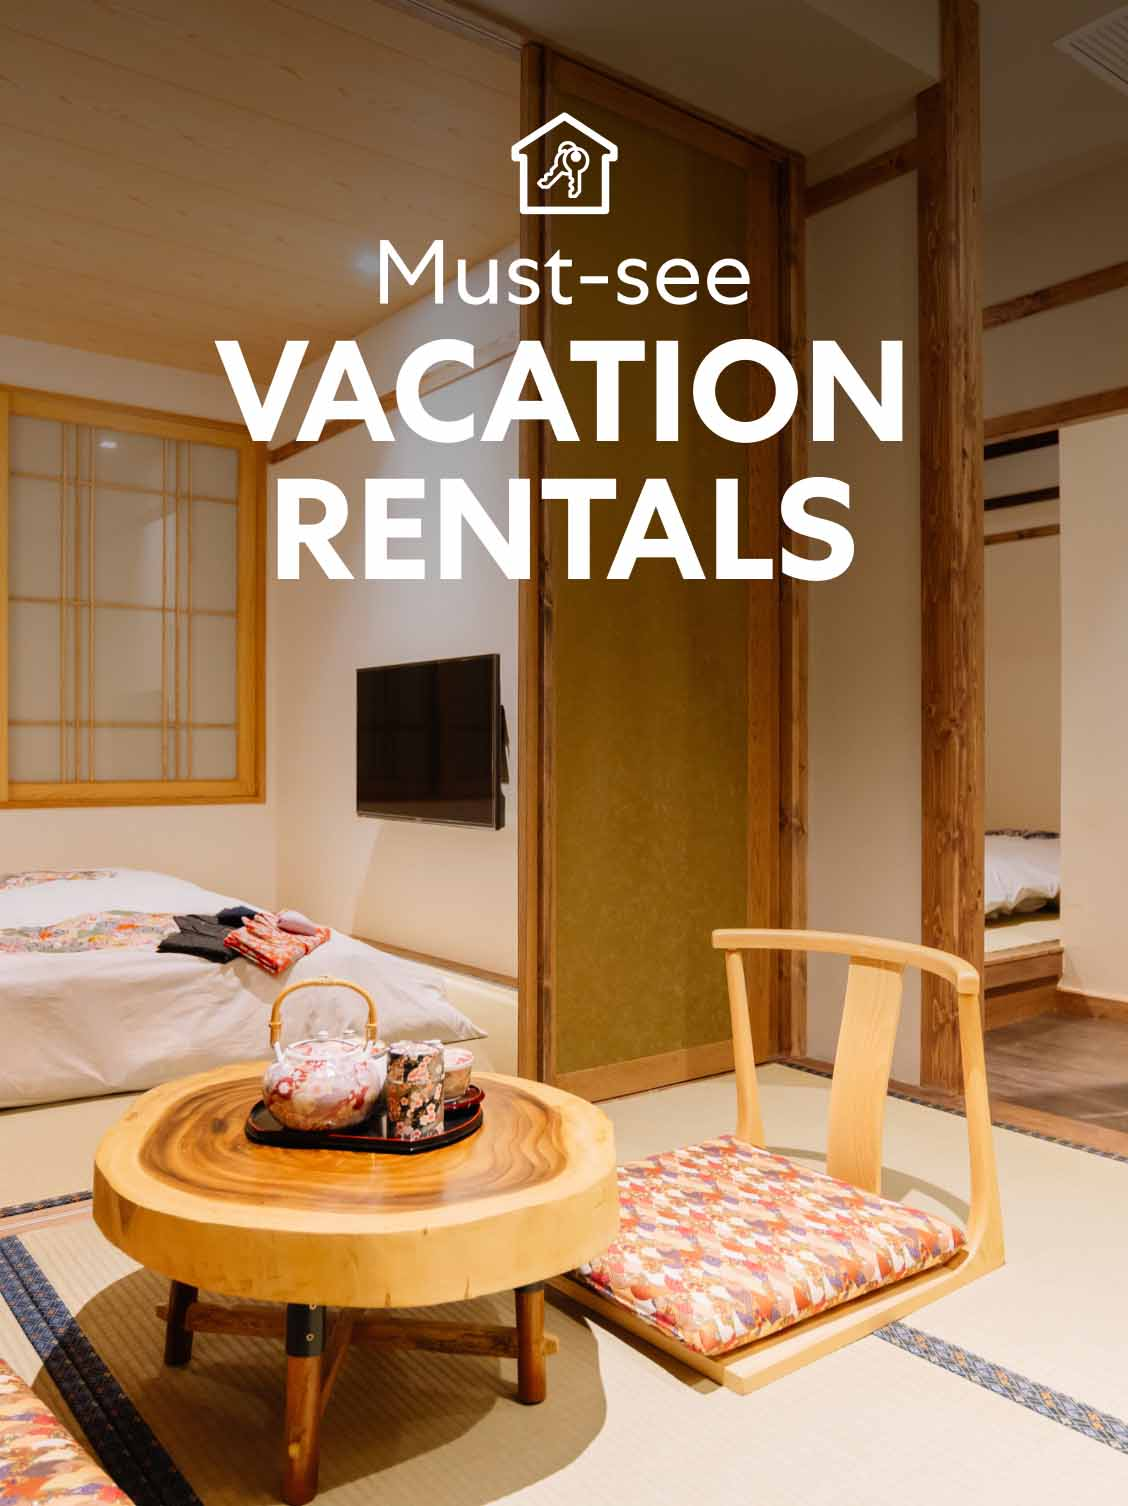 Interior view of a Japanese-style hotel room. Screens are set up to separate areas. A small floor table and chair sit in the forefront, a low bed in the background. A superimposed title reads: Must-see vacation rentals.